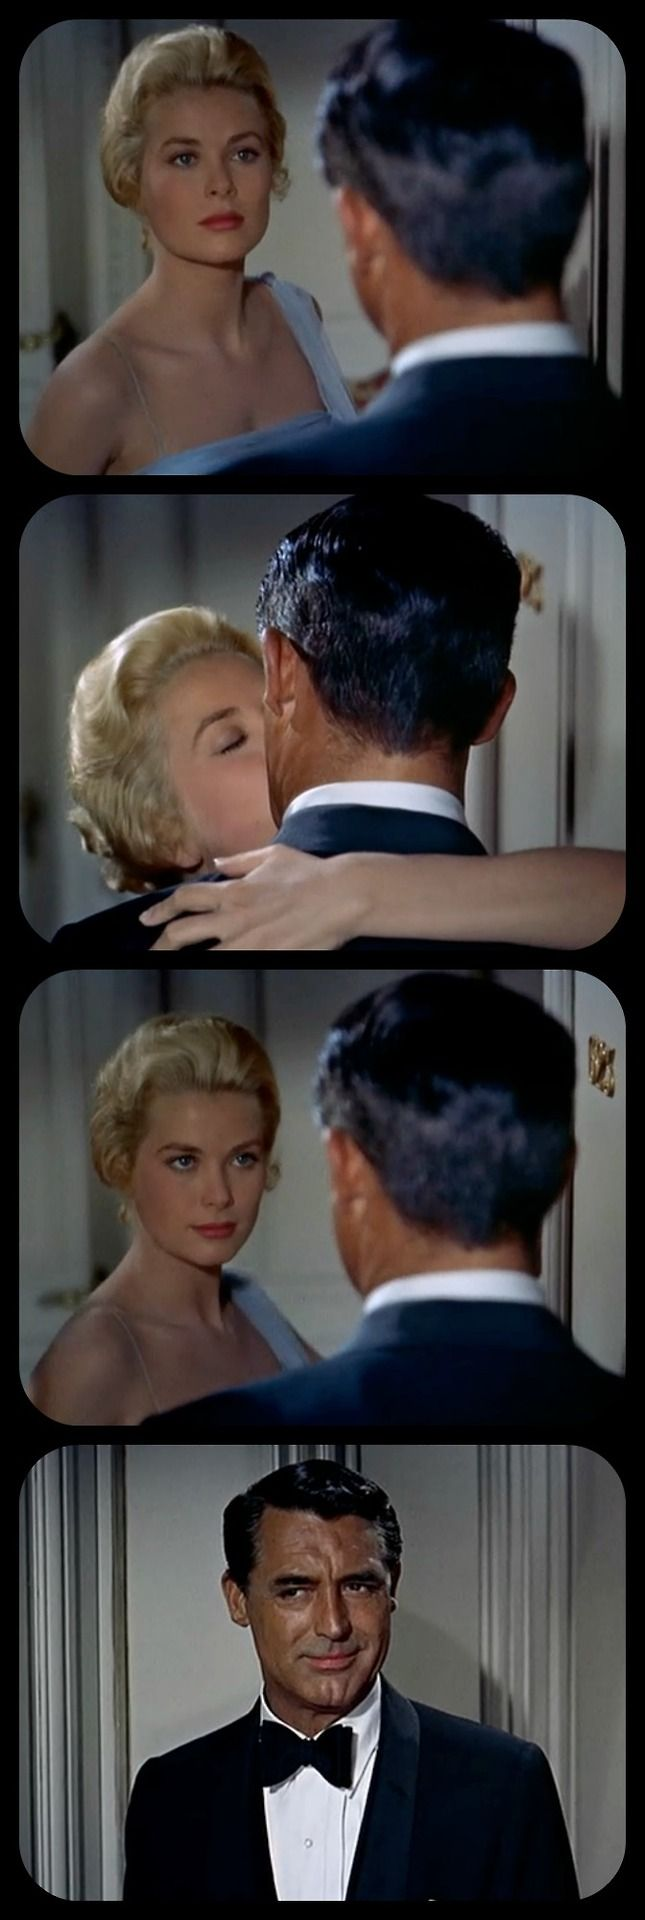 Grace Kelly and Cary Grant inTo Catch a Thief1955 My favorite scene in this film. The look on that face... I think he's the only actor who can make that gesture.